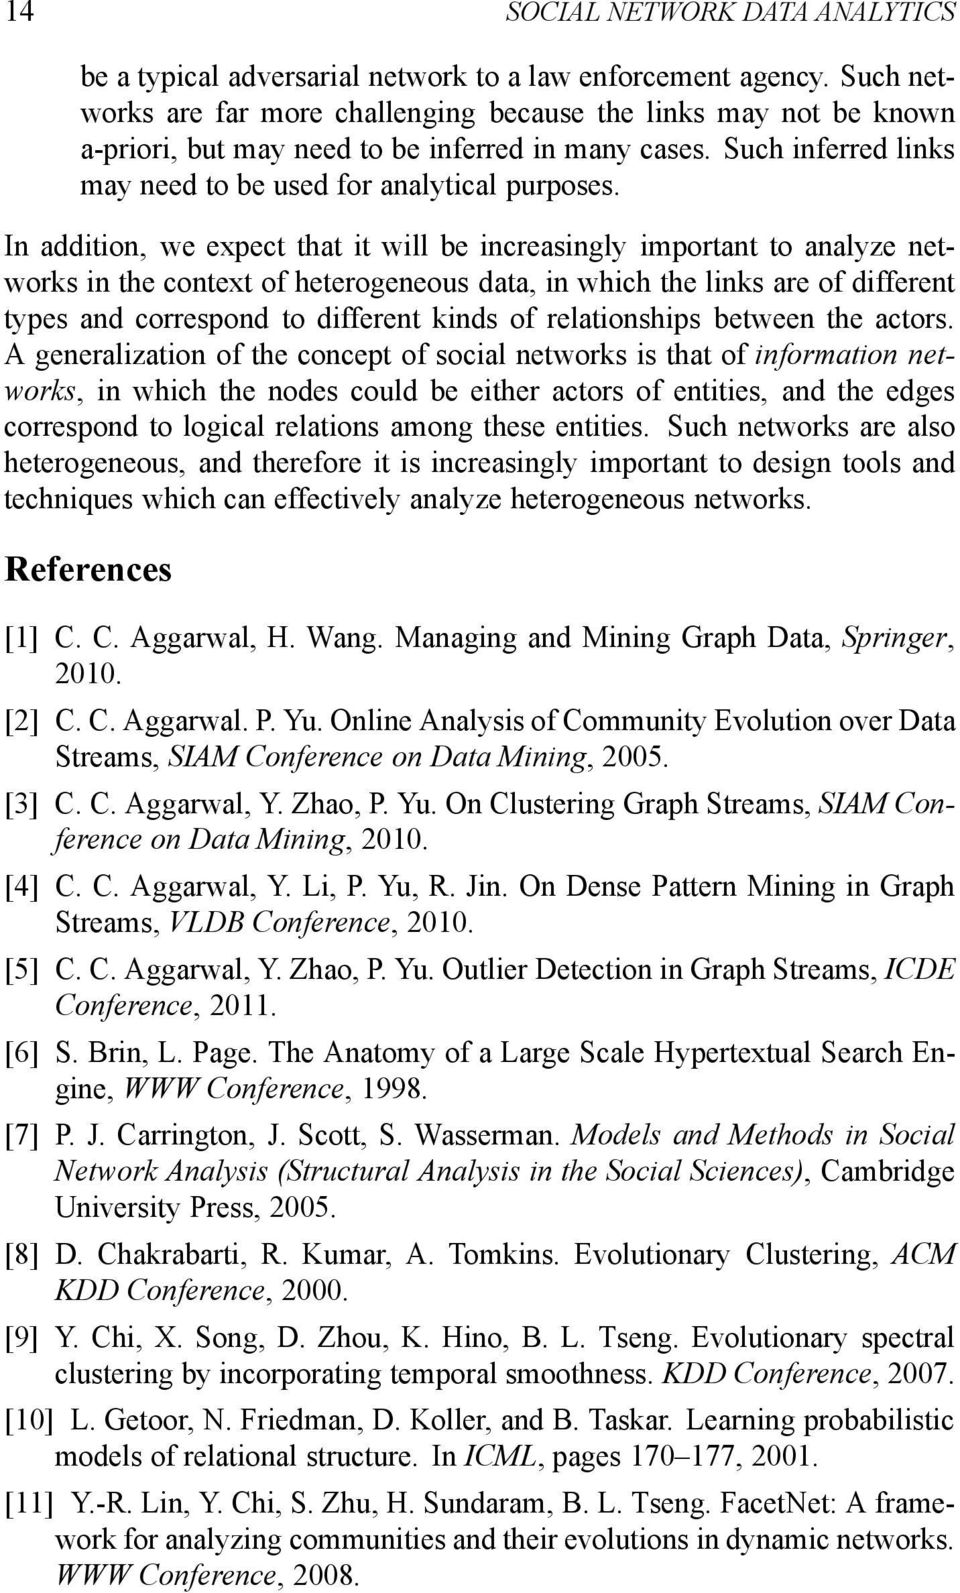 In addition, we expect that it will be increasingly important to analyze networks in the context of heterogeneous data, in which the links are of different types and correspond to different kinds of